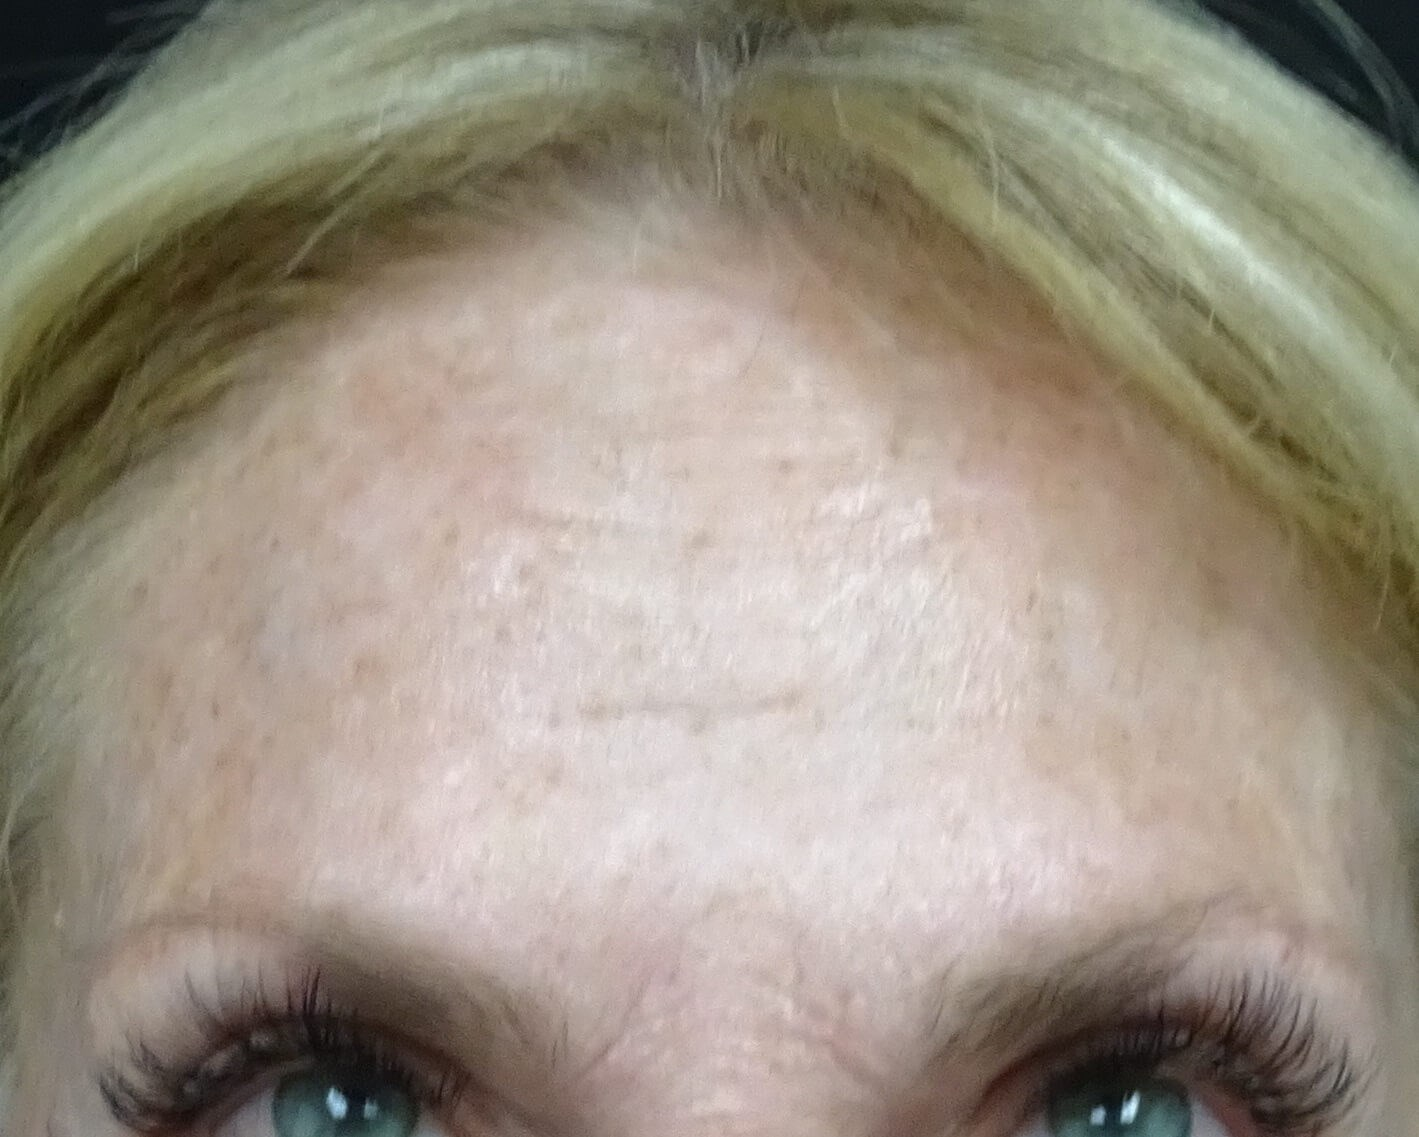 Botox in Henderson / Las Vegas 2 Weeks After Botox Injection